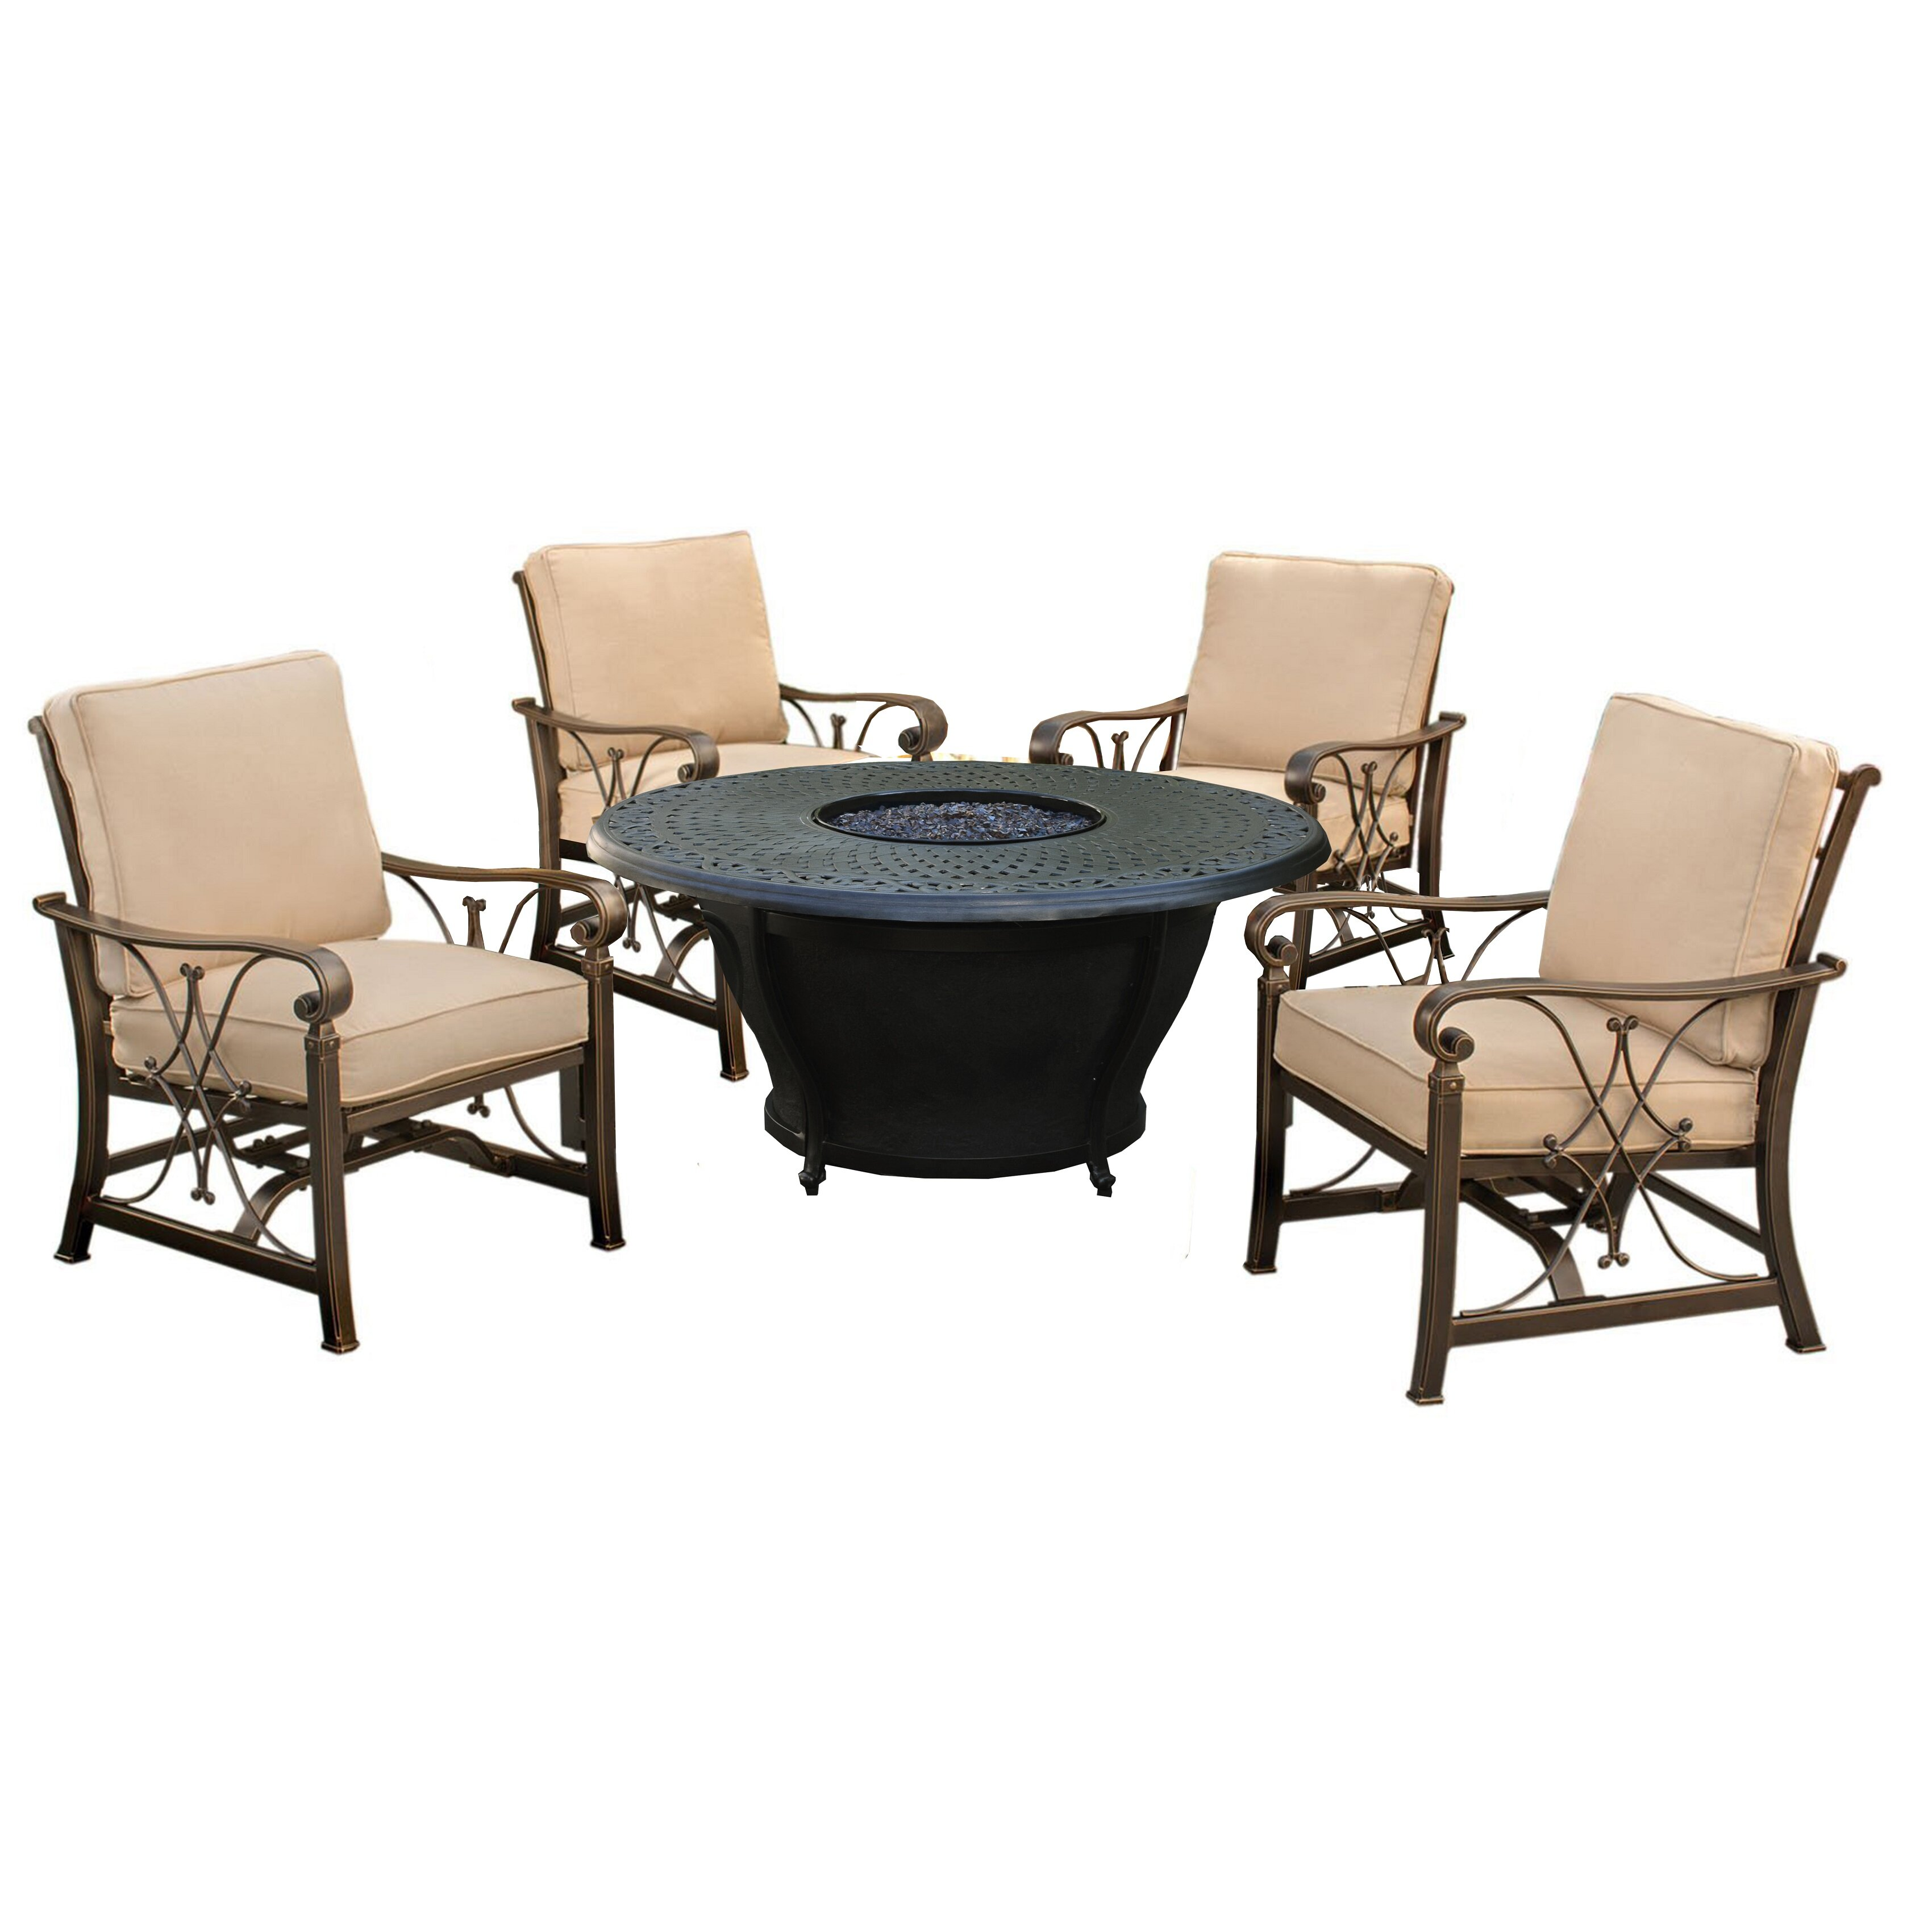 Darby Home Co Owego 5 Piece Conversation Set with Cushions | Wayfair